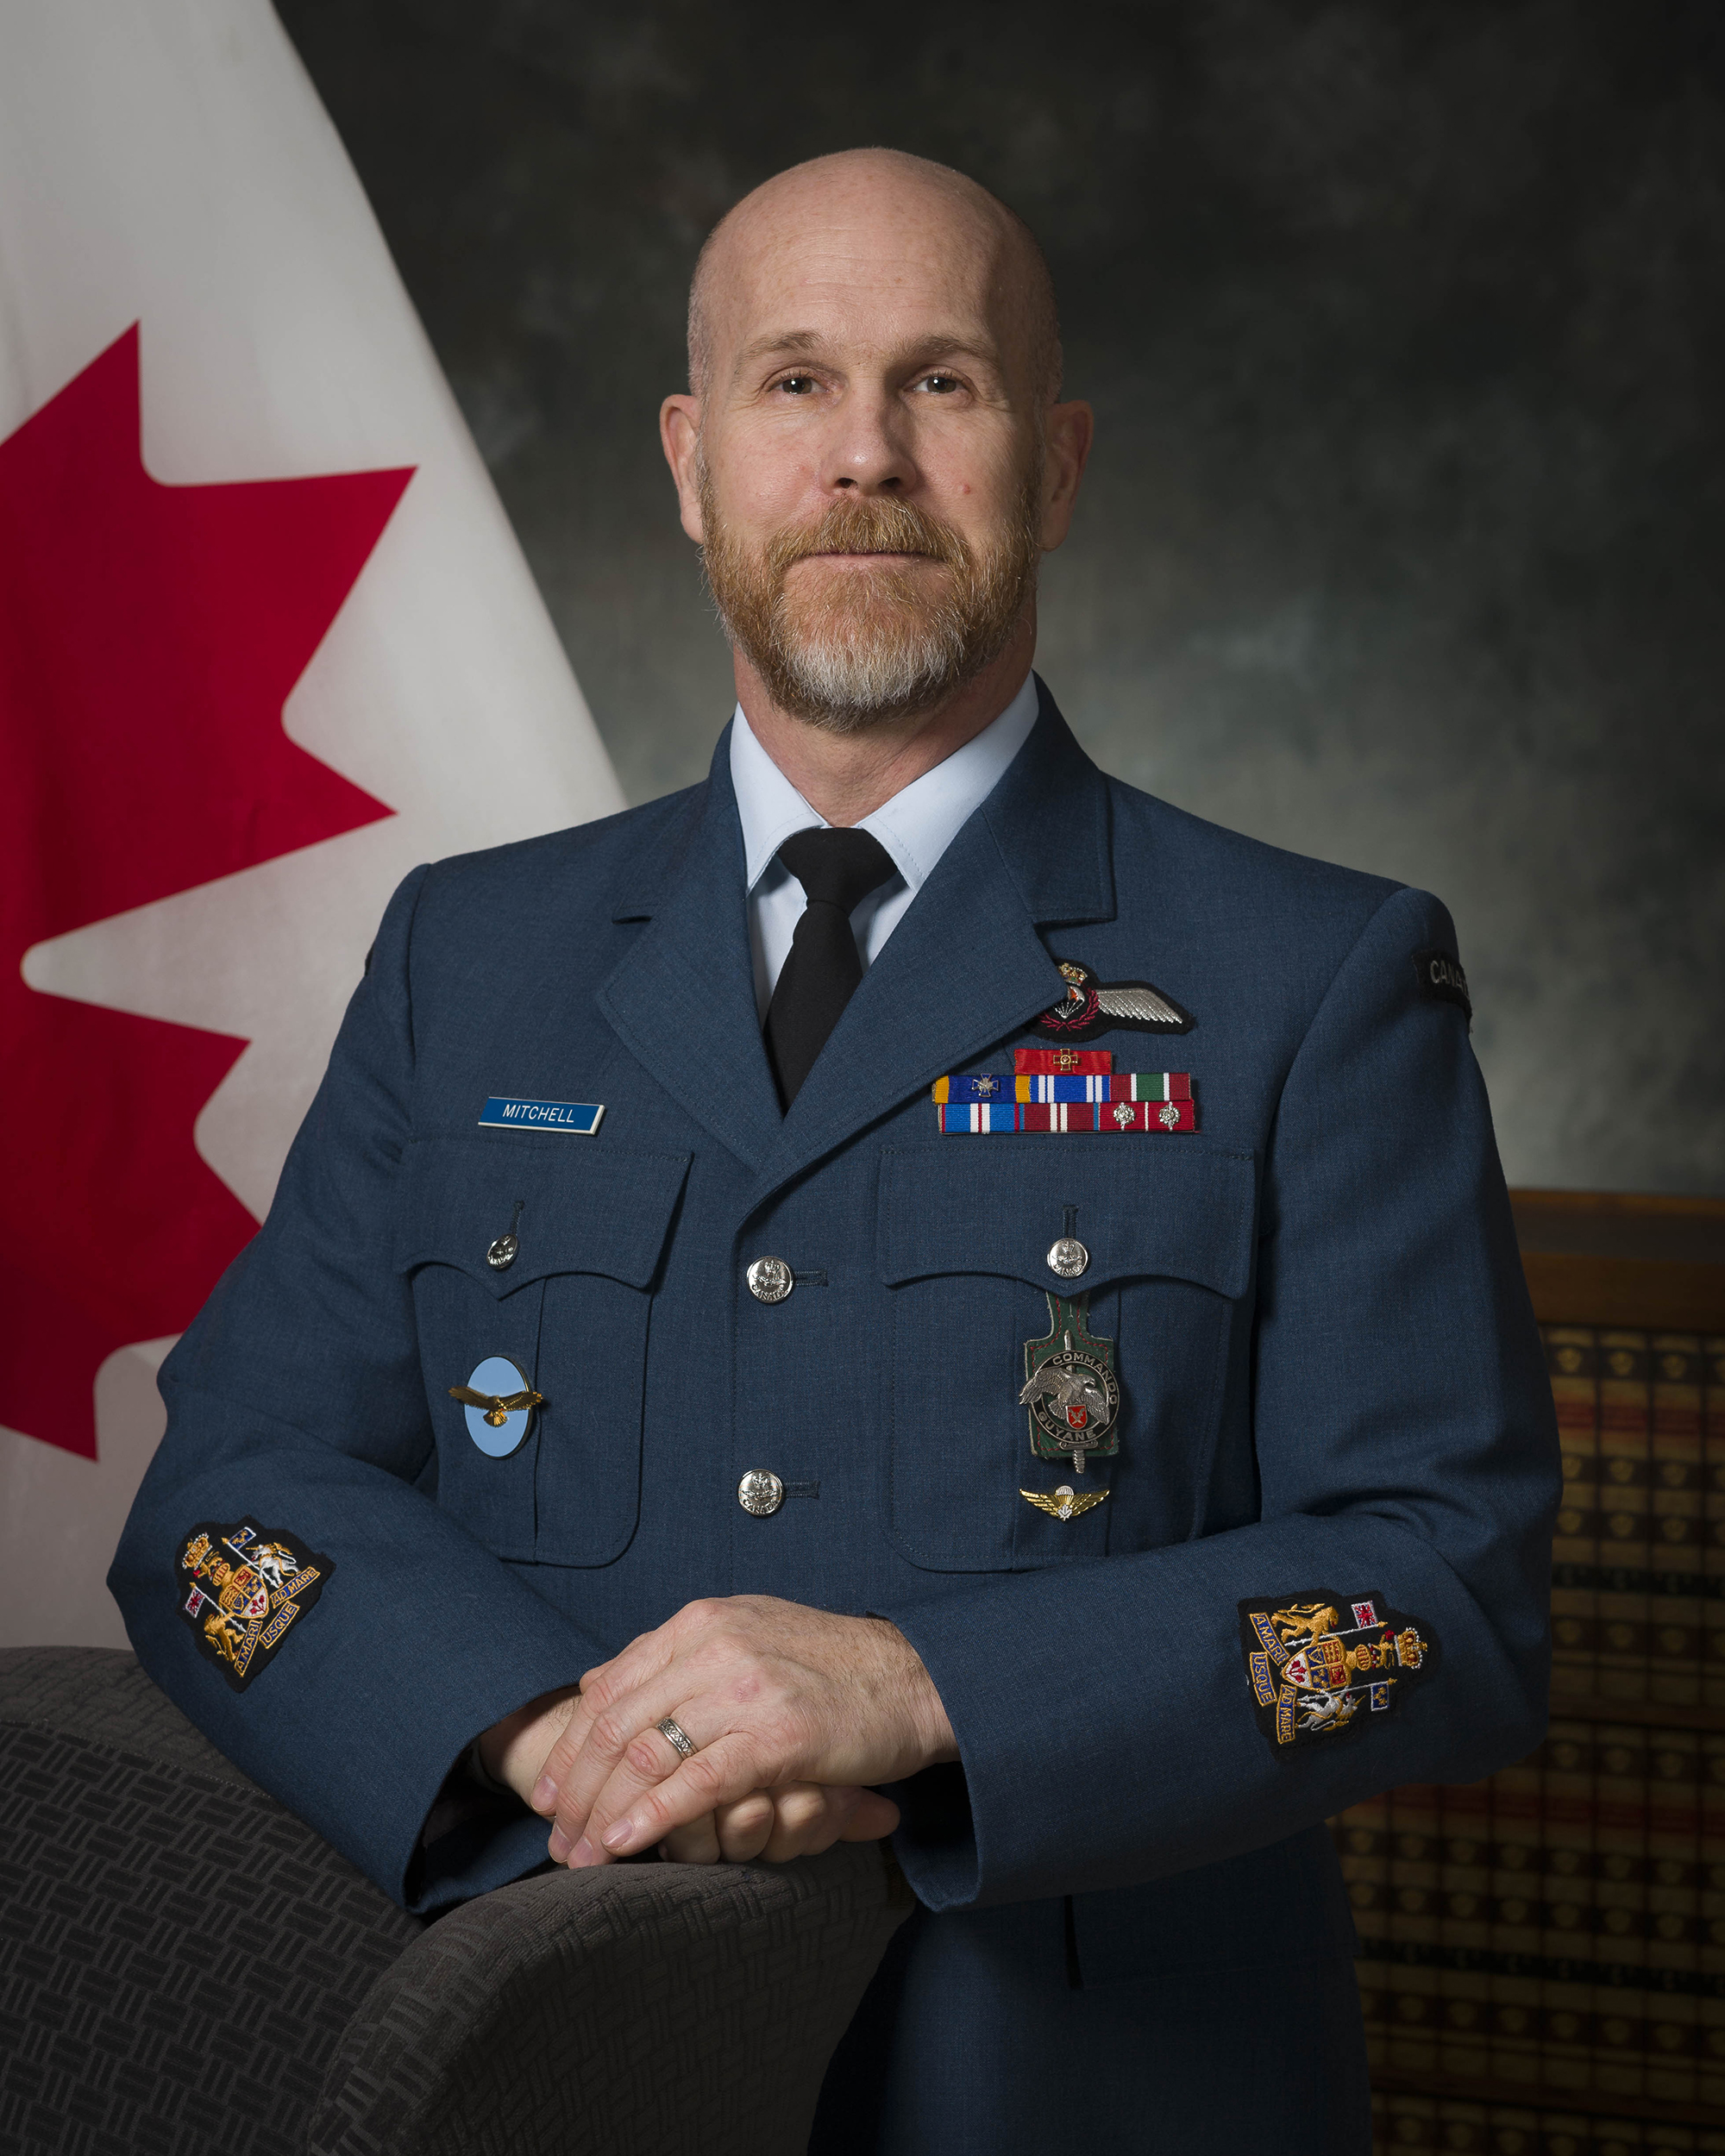 A photo of a man wearing a blue military uniform with medals. Behind him is a Canadian flag.